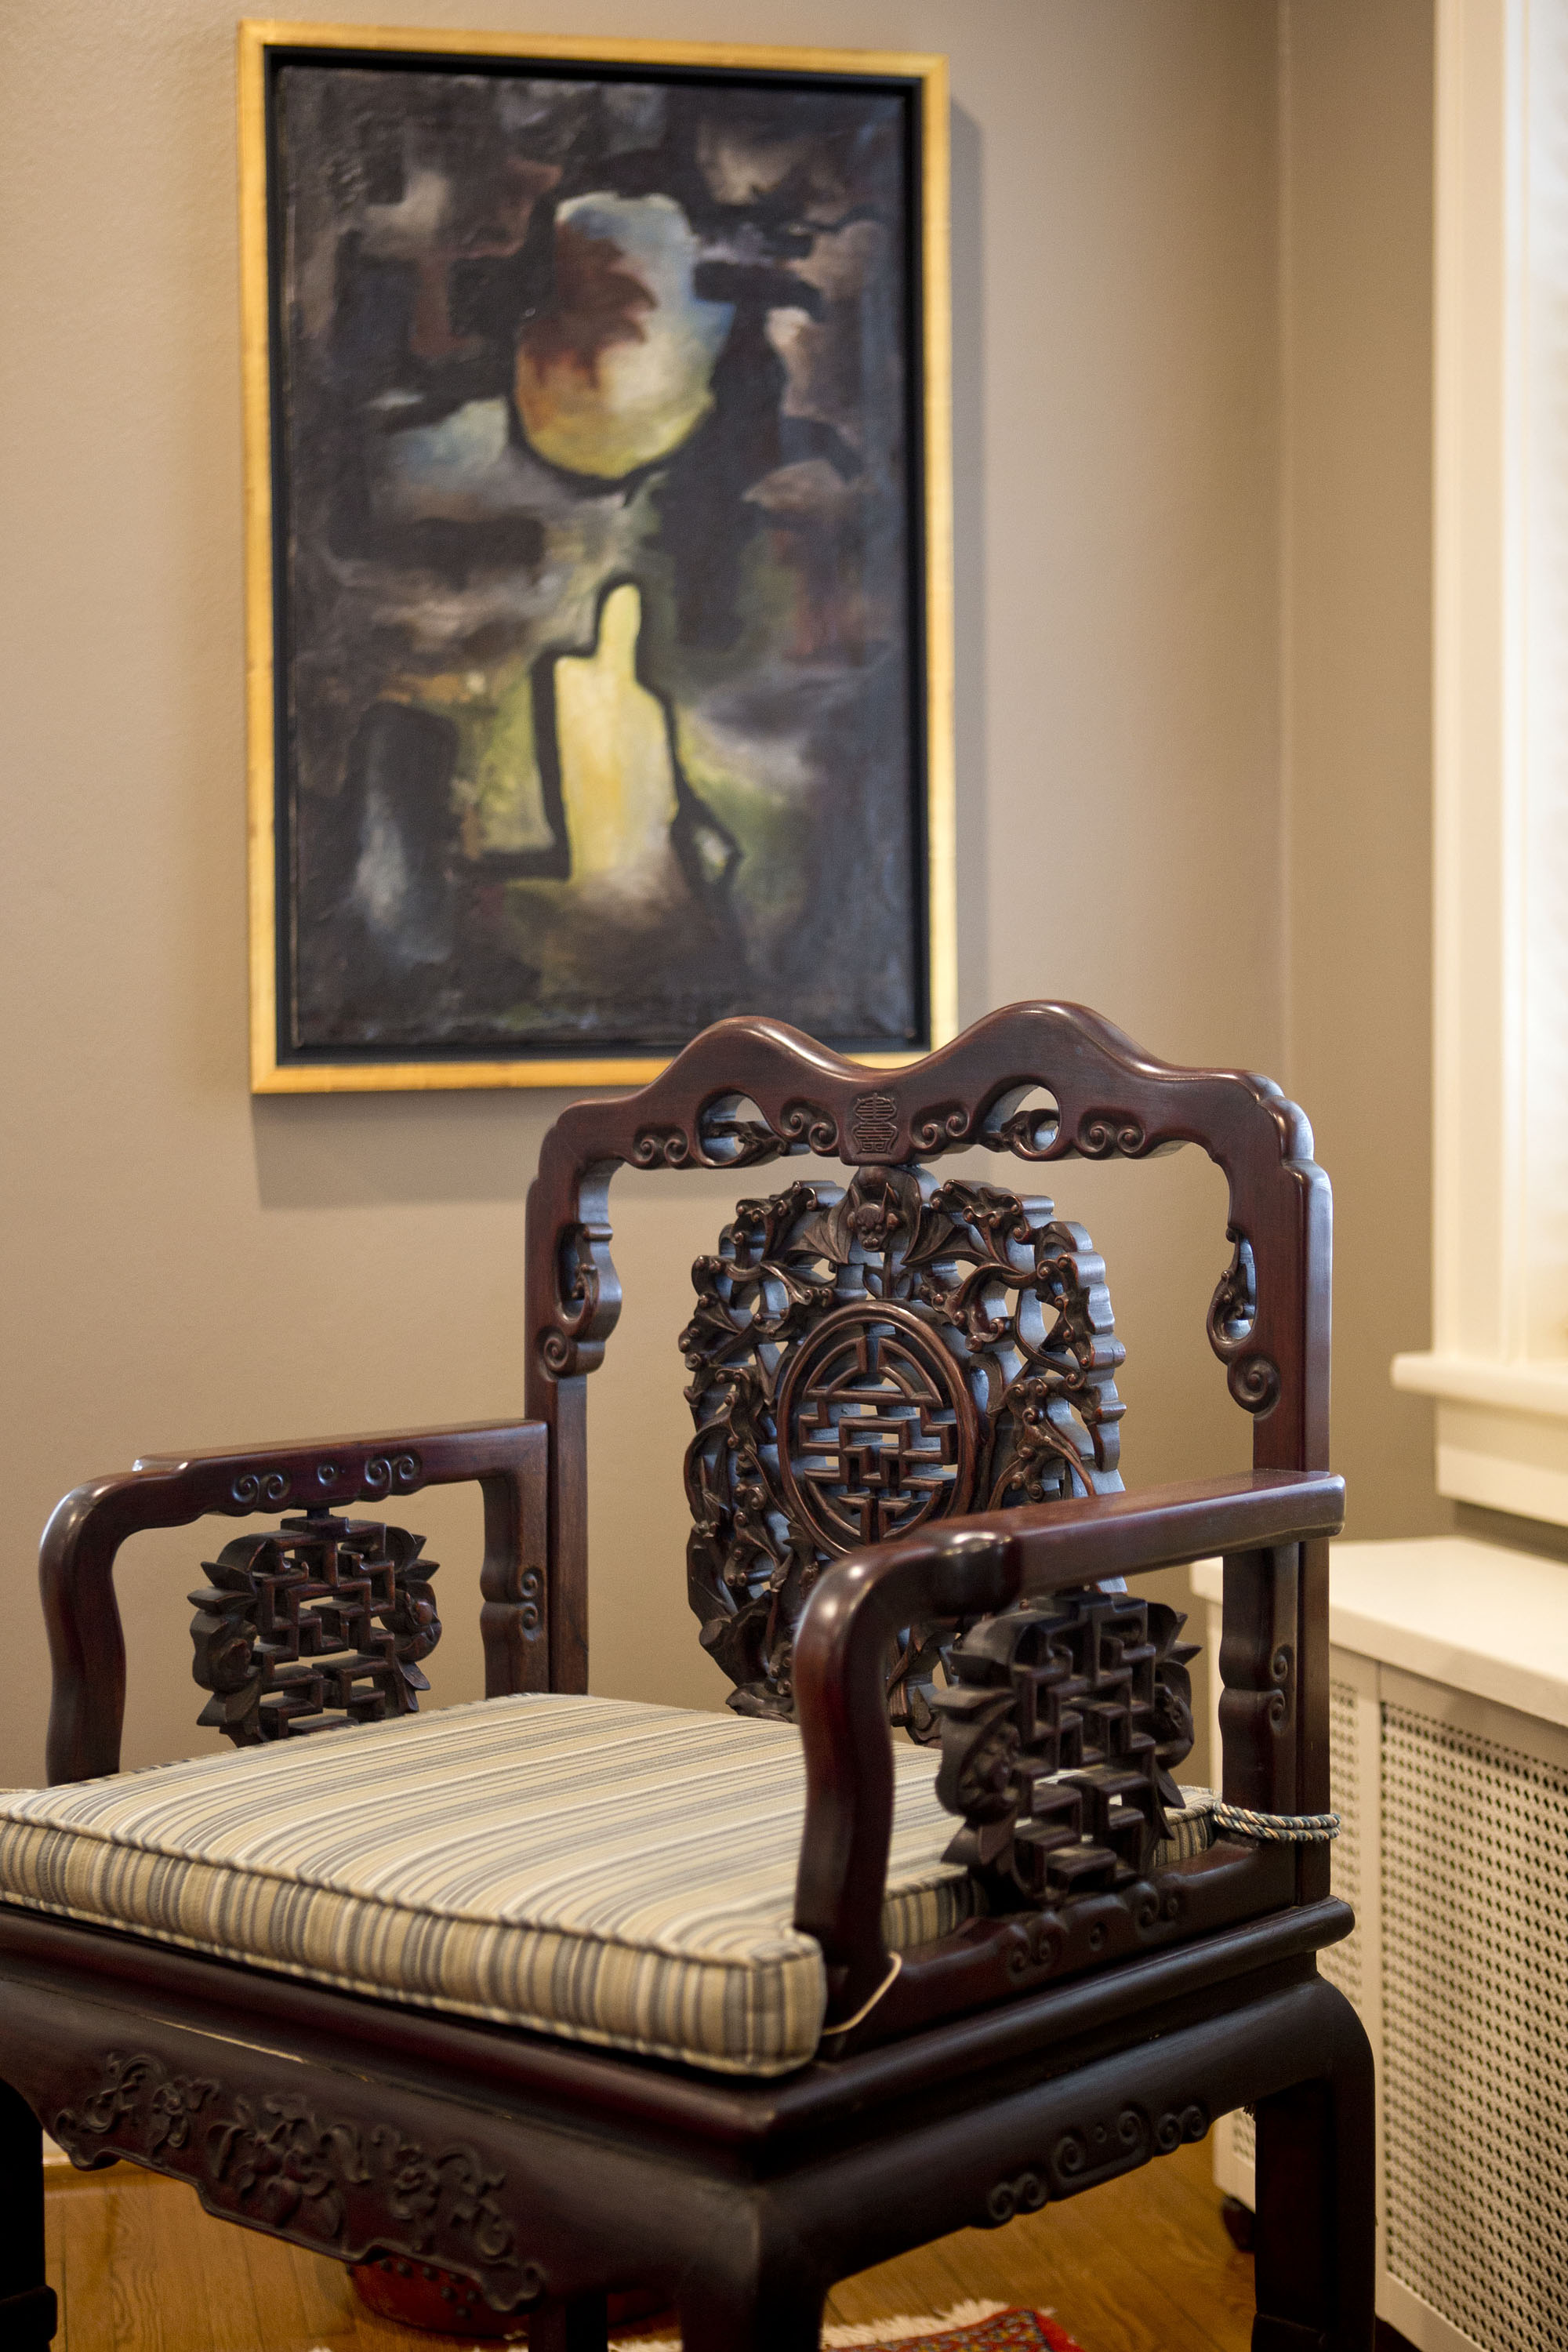 Modern art and an antique Chineese chair stands in the window-lit corner of the family room.